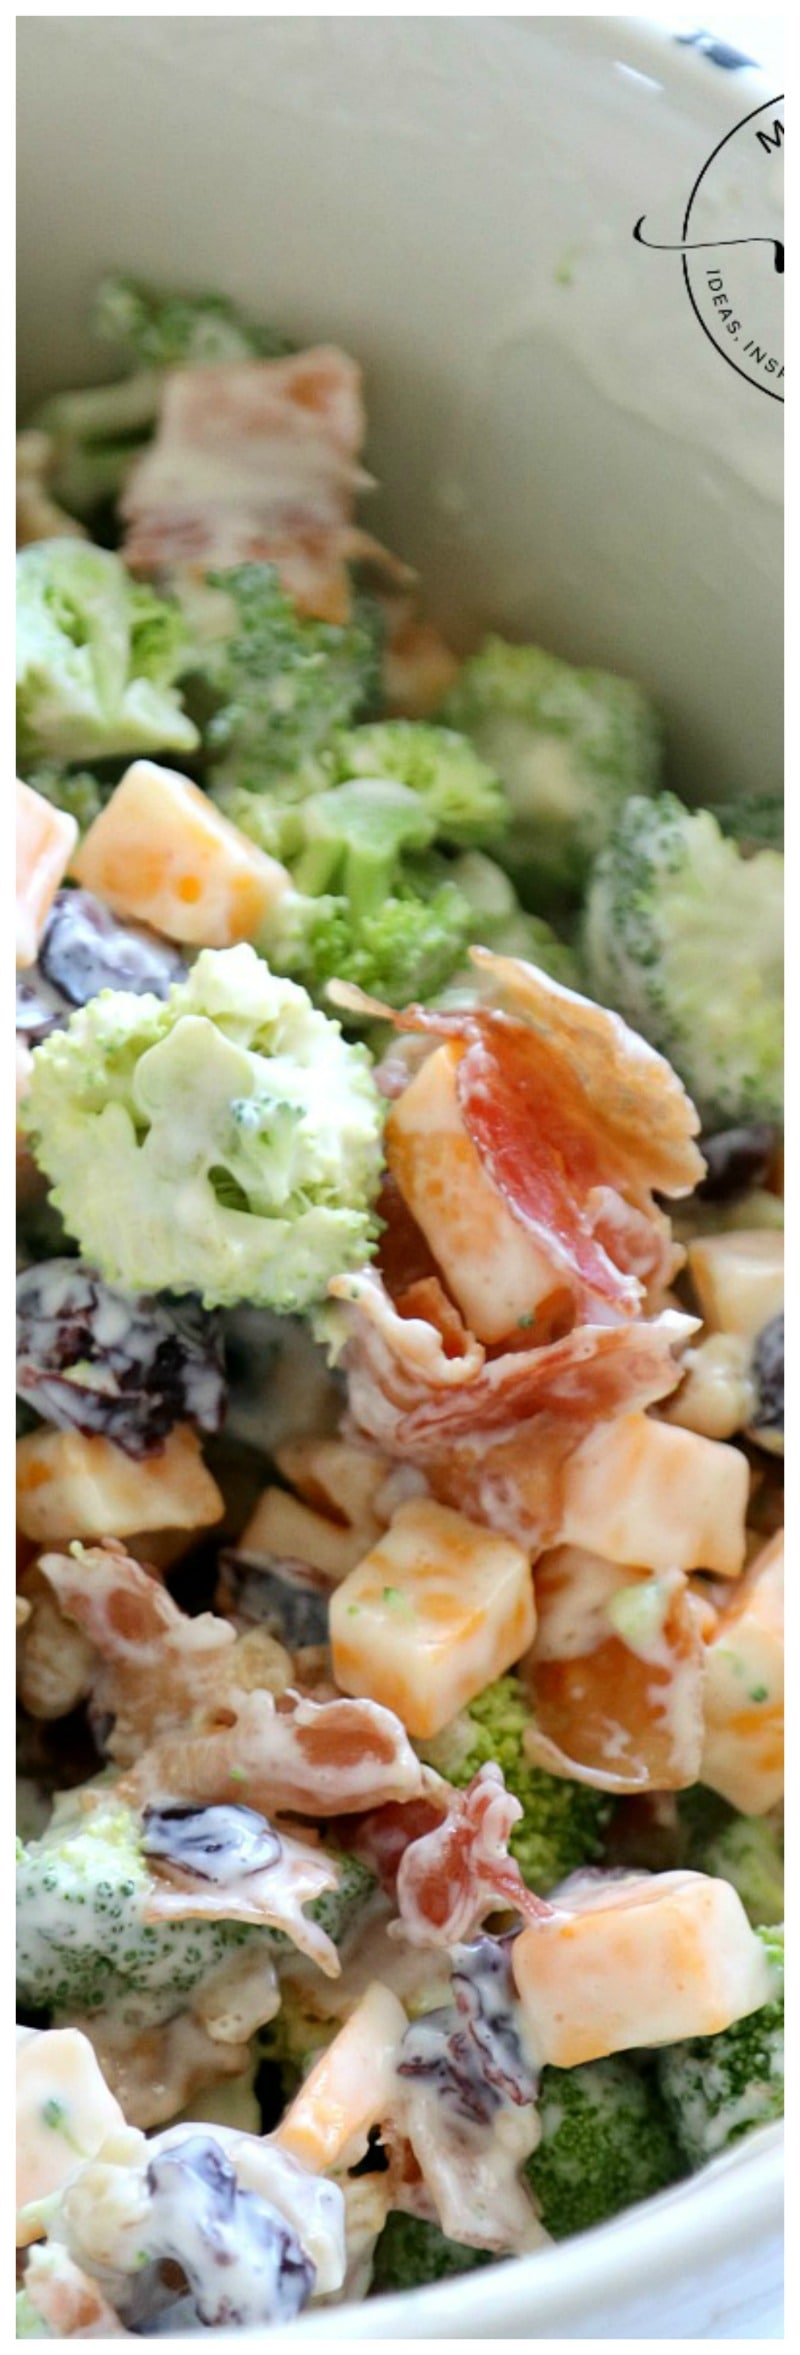 Easy Bacon Broccoli Salad: Grandma will Approve!